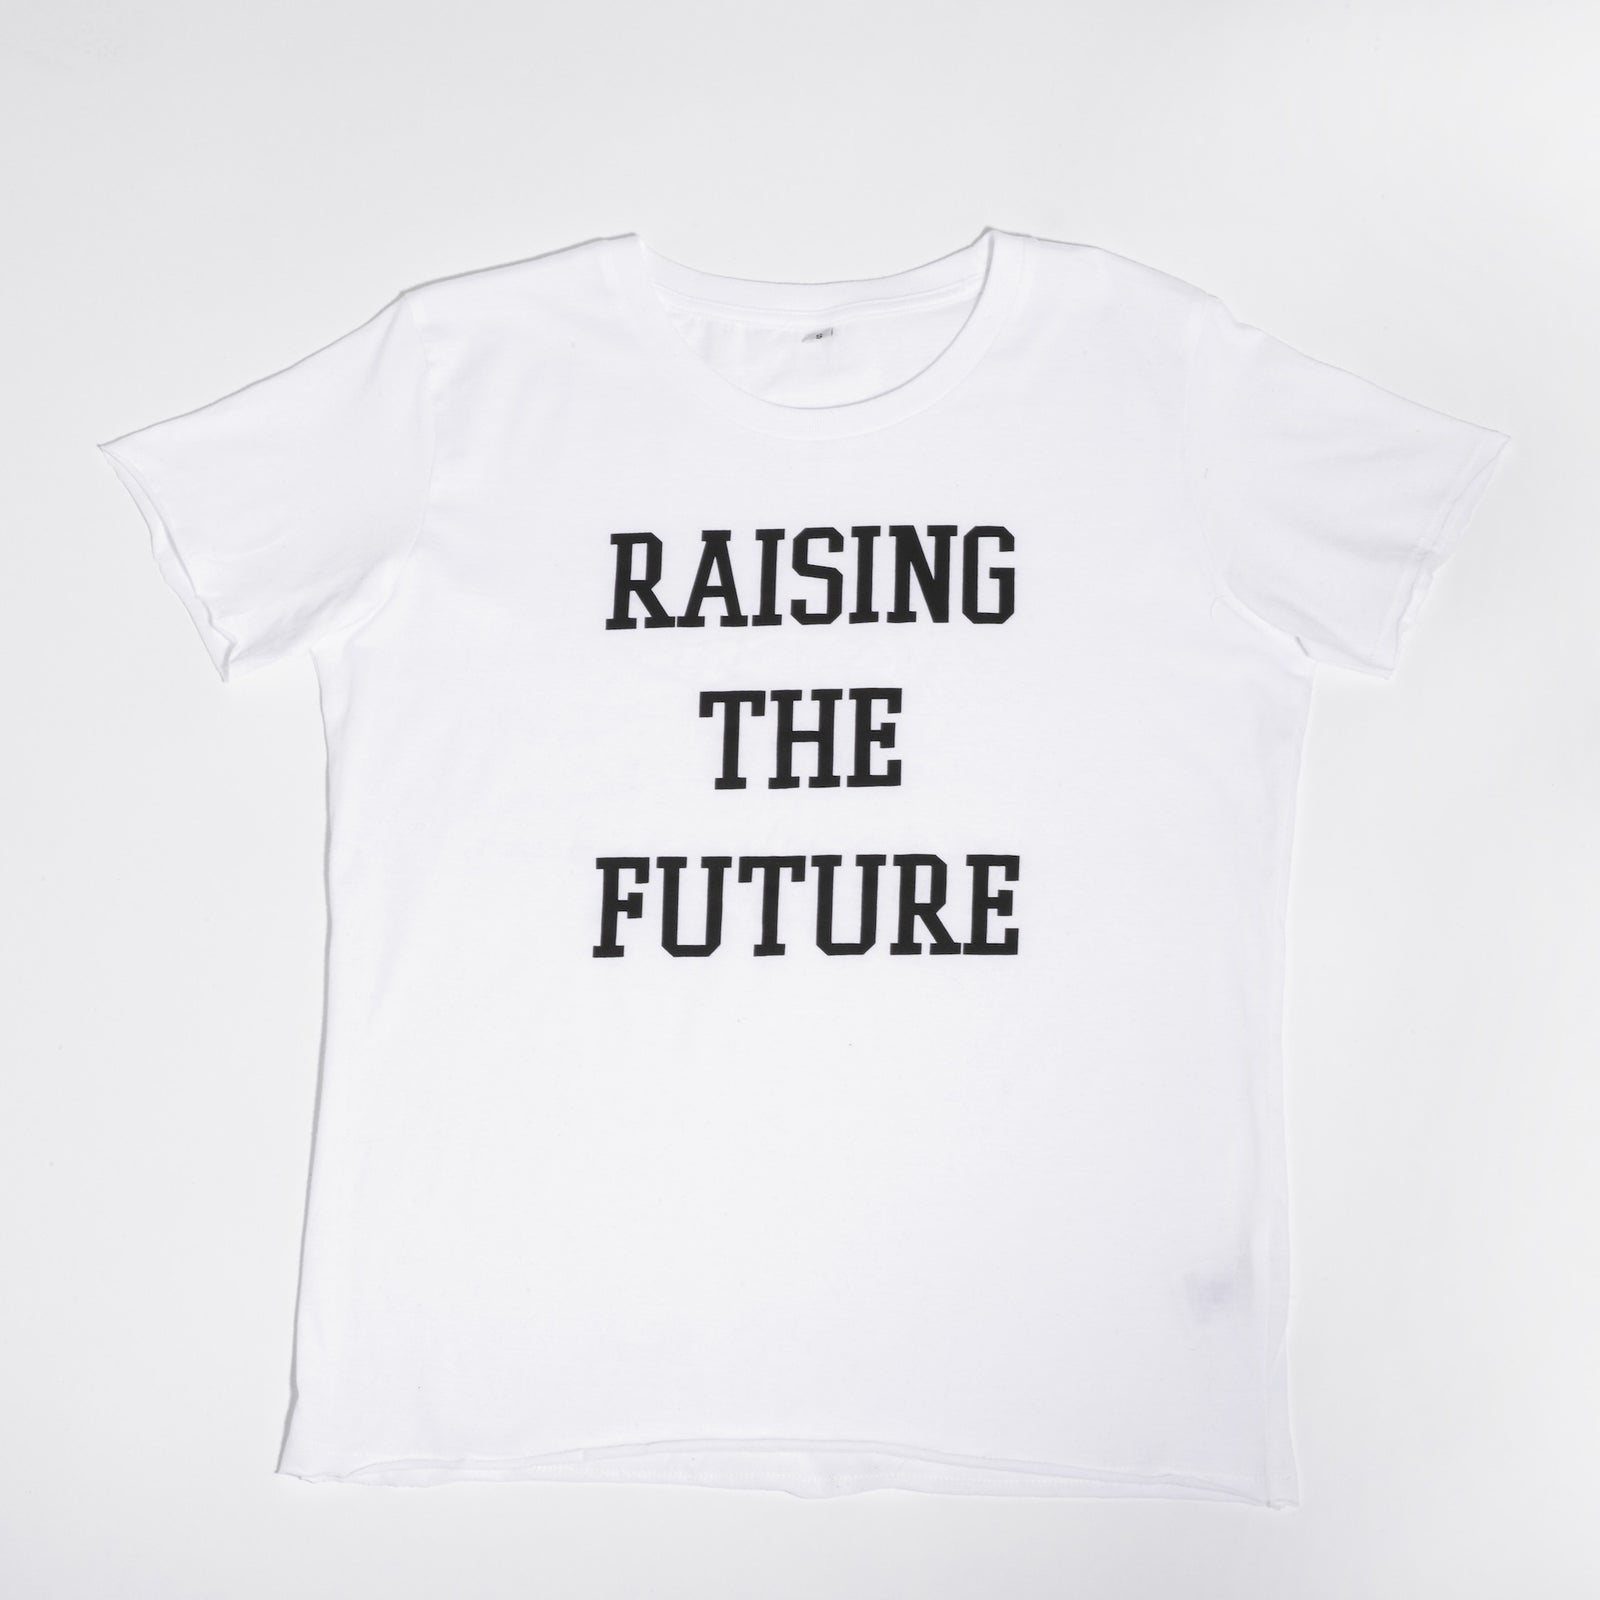 Raising The Future White T-Shirt by Mère Soeur. Twinning action with our matching The Future shirt. Mere Soeur is a lifestyle brand dedicated to celebrating sisterhood and empowering mums.